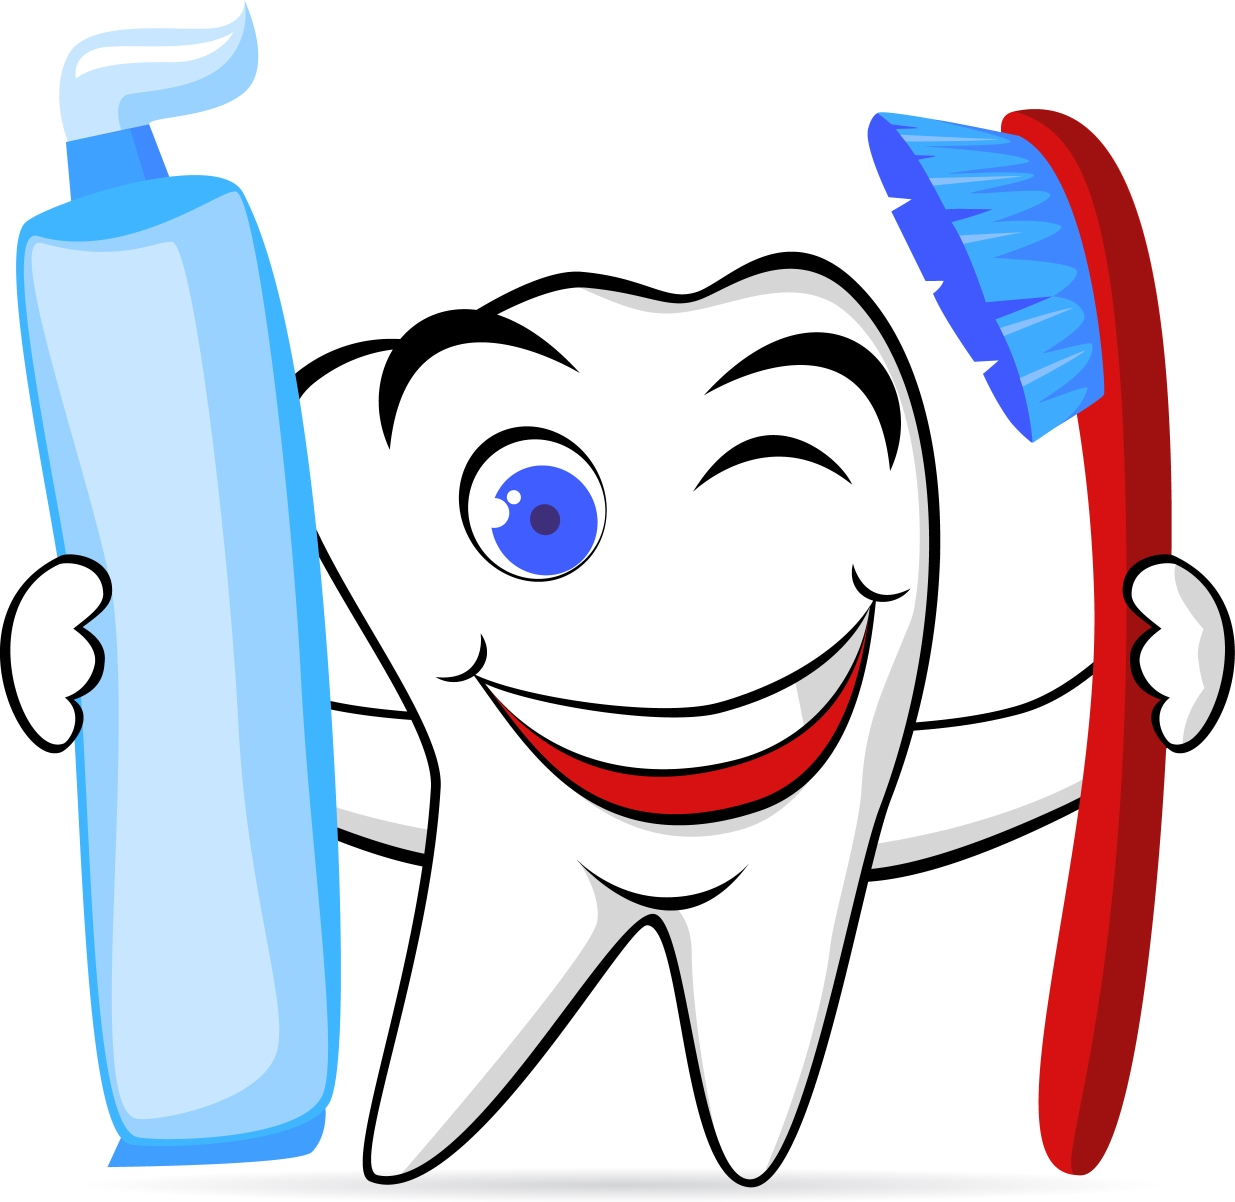 Clip Art Toothbrush Clip Art suggestions online images of tooth brush clip art best toothbrush clipart 24407 clipartion com